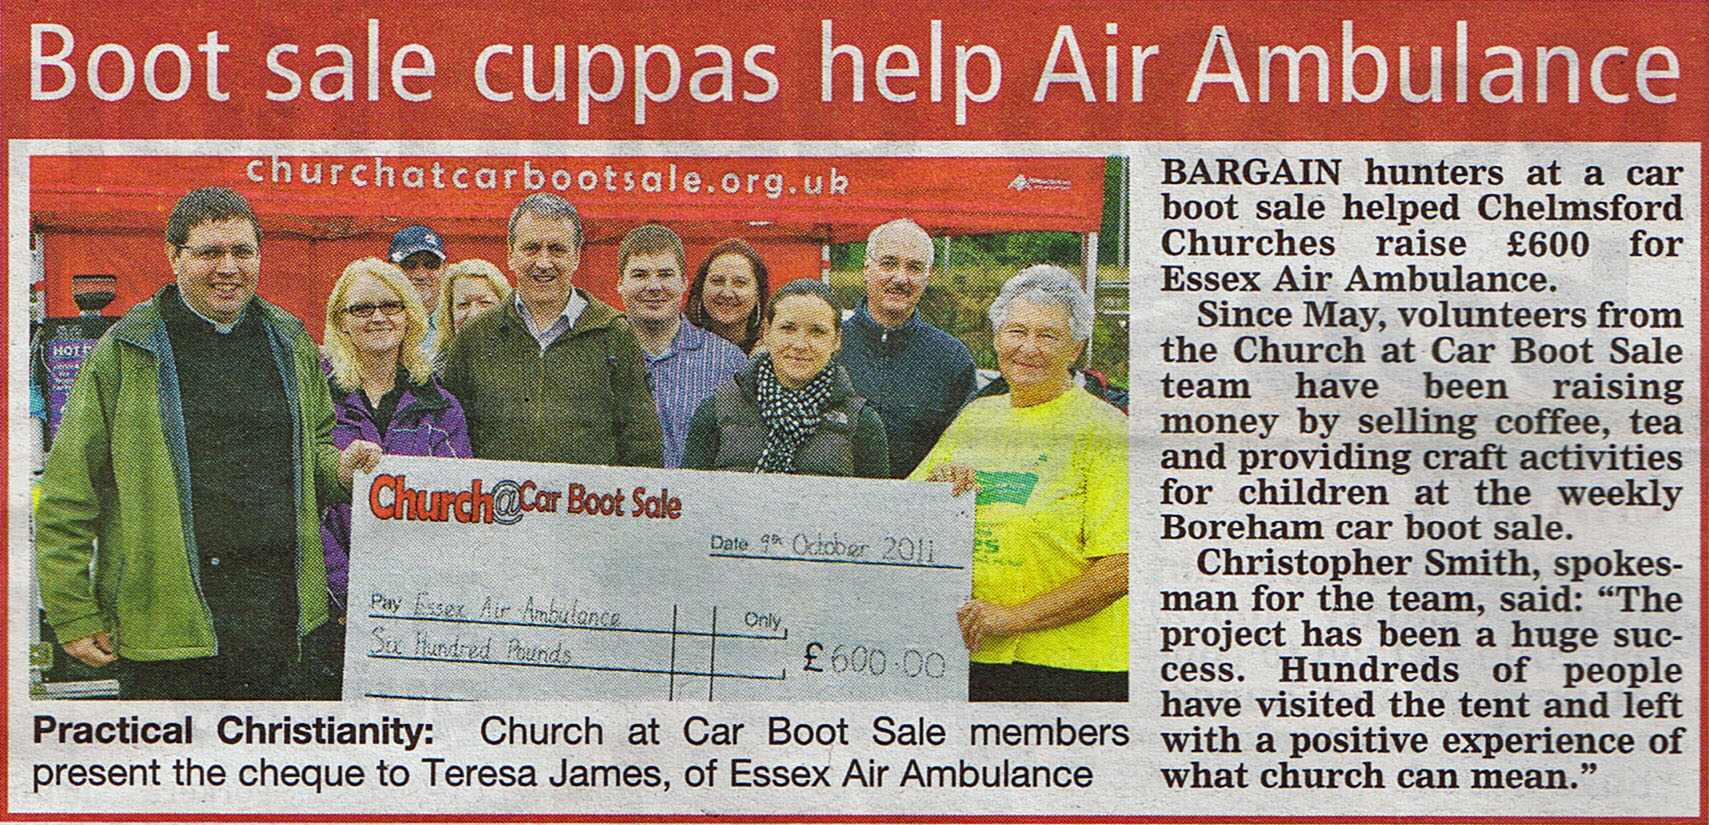 Chelmsford Weekly News Article about Chelmsford Churches Help the Essex Air Ambulance at the Boreham Car Boot Sale